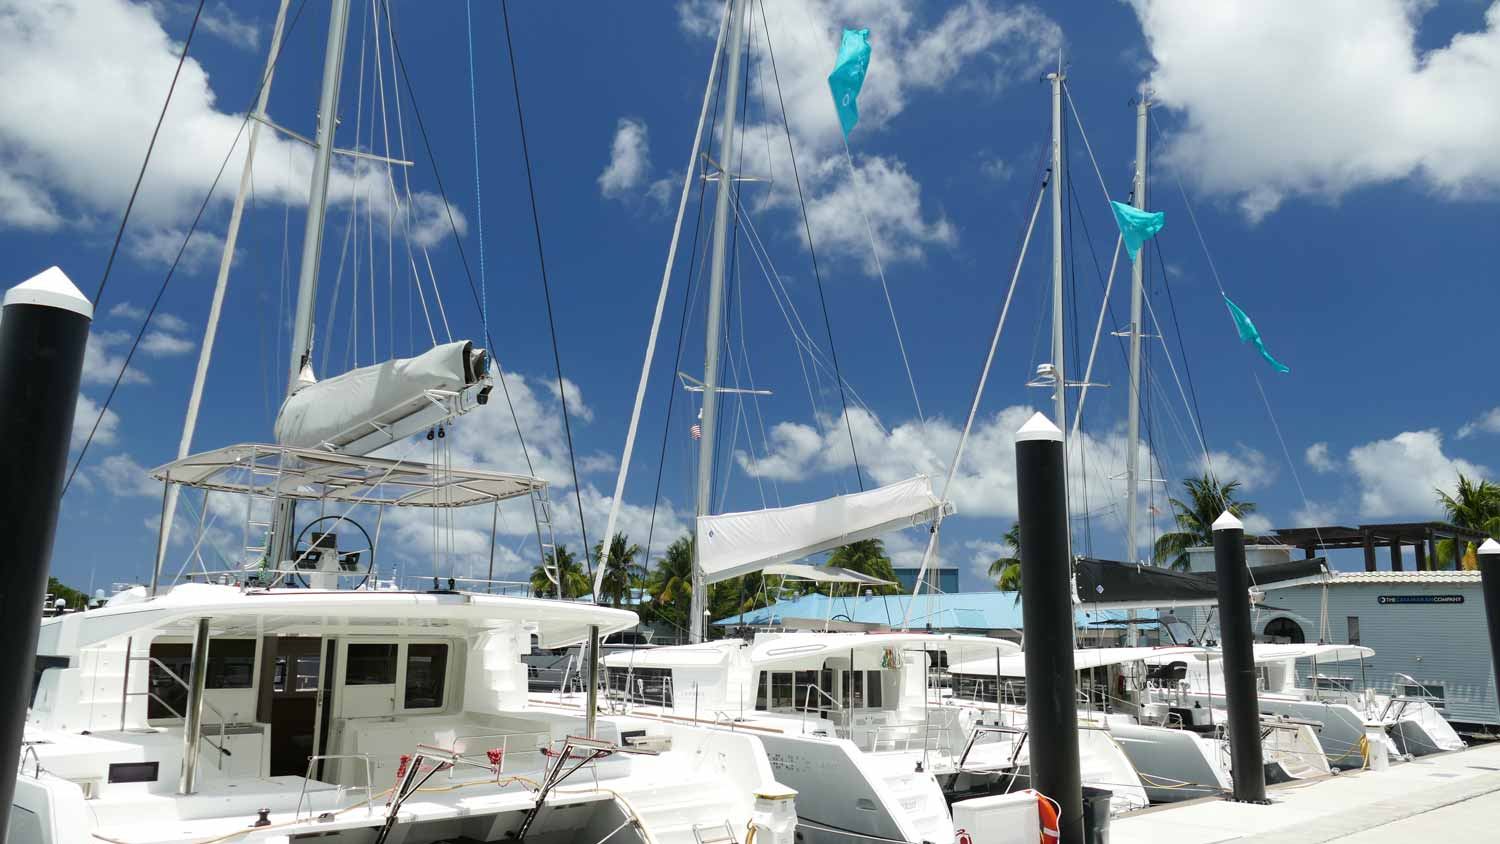 Boats For Sale on Catamaran Row at Lauderdale Marine Center